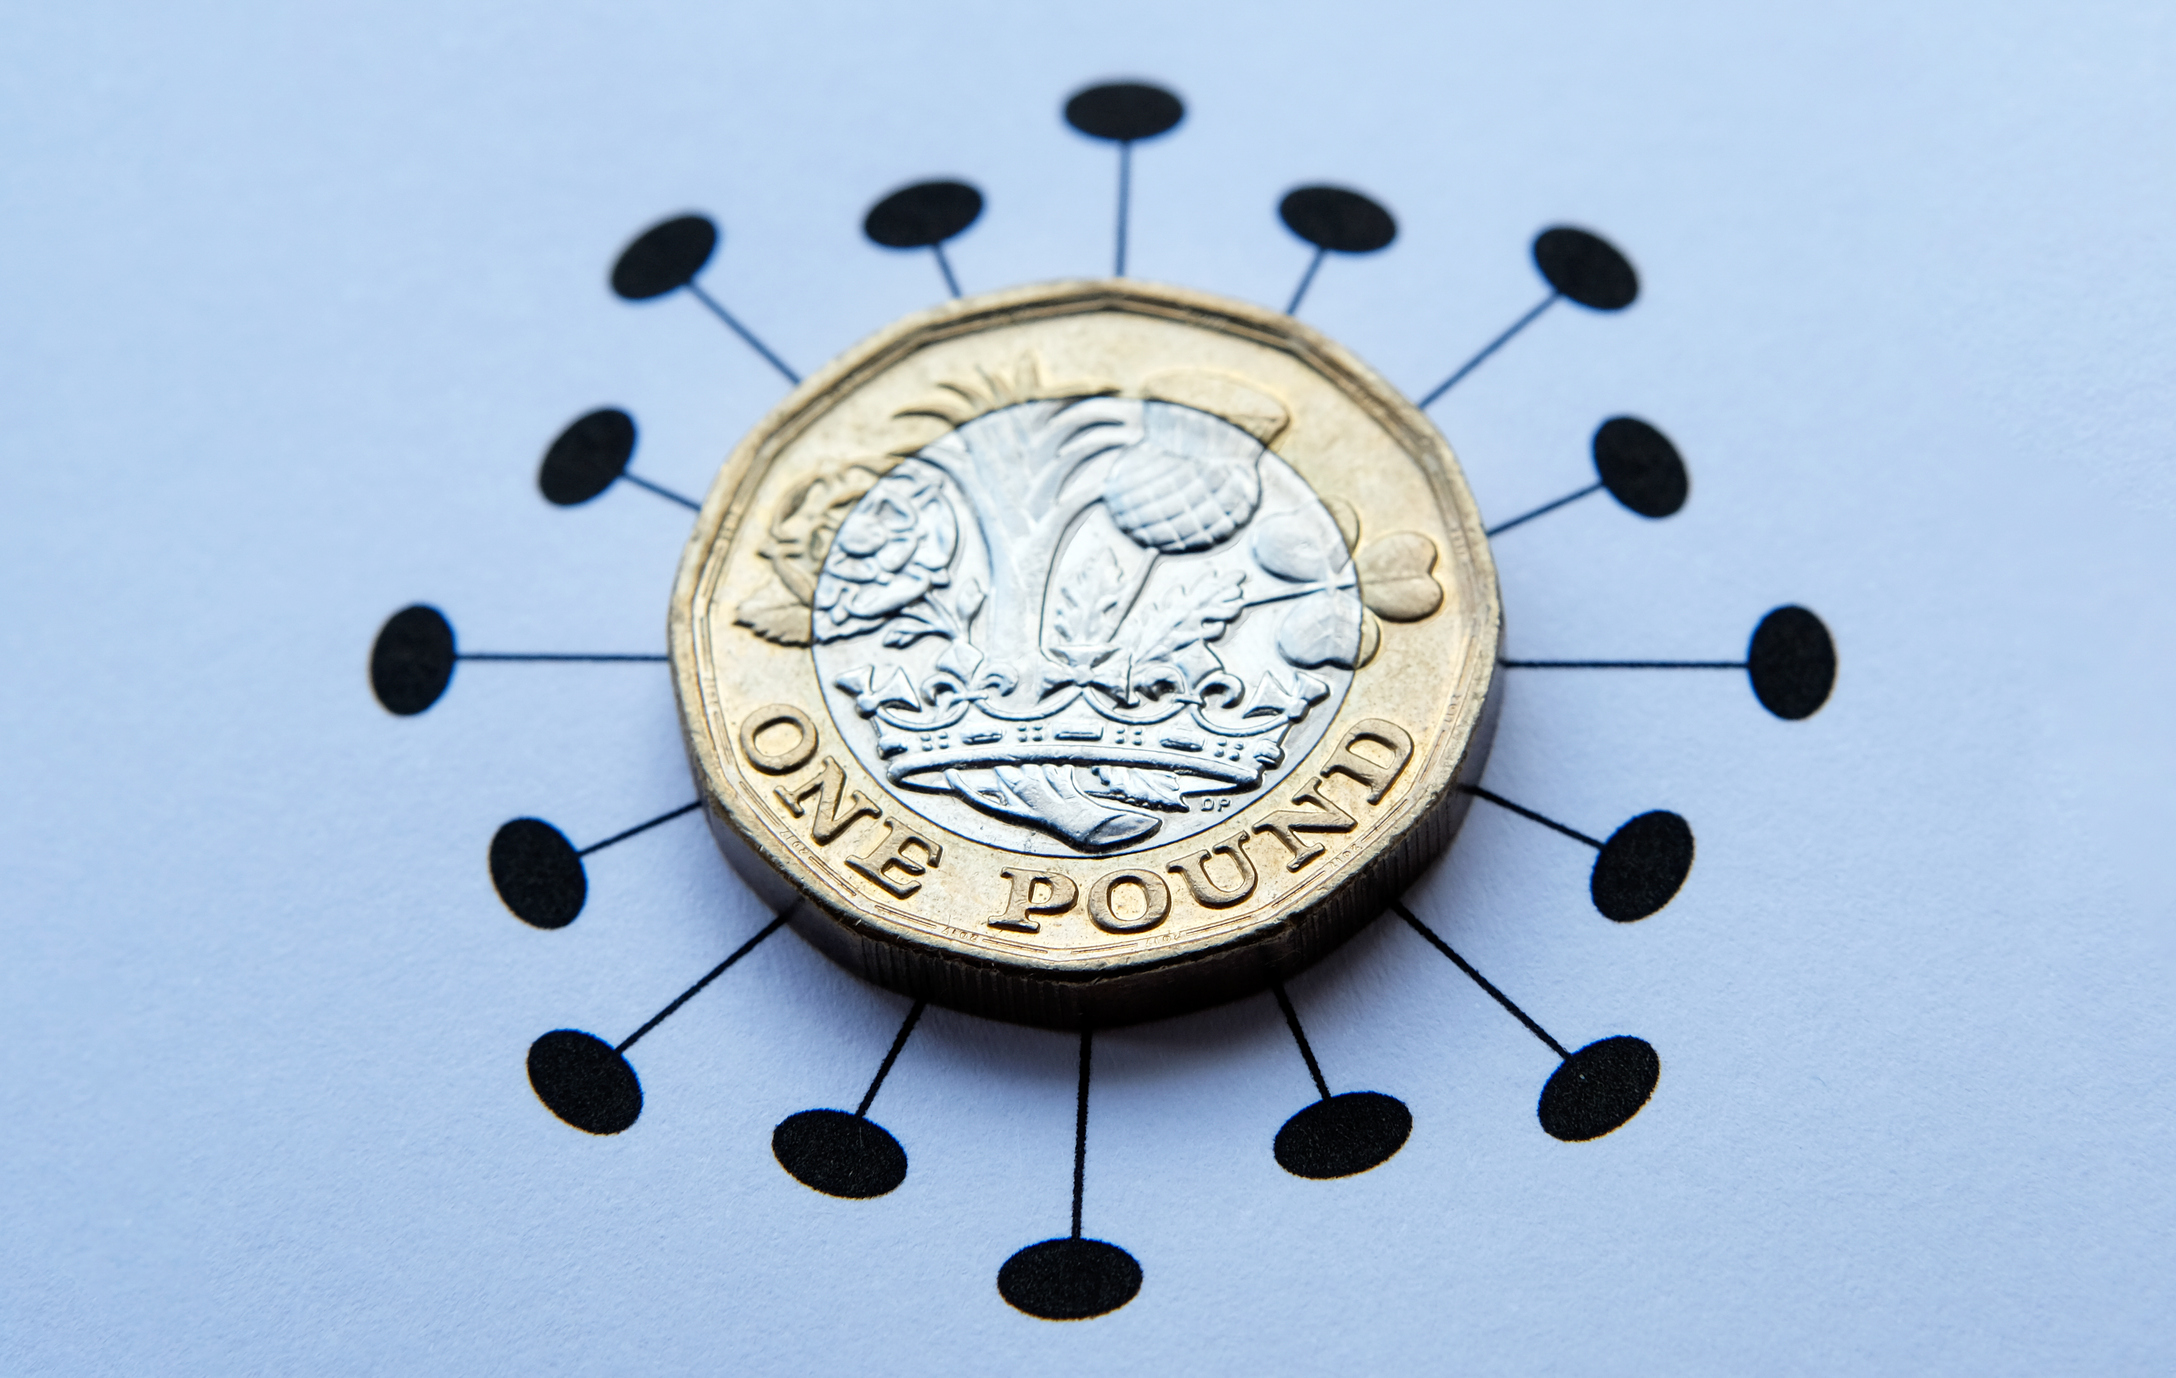 One pound coins placed on top of Coronavirus COVID-19 printed illustration.